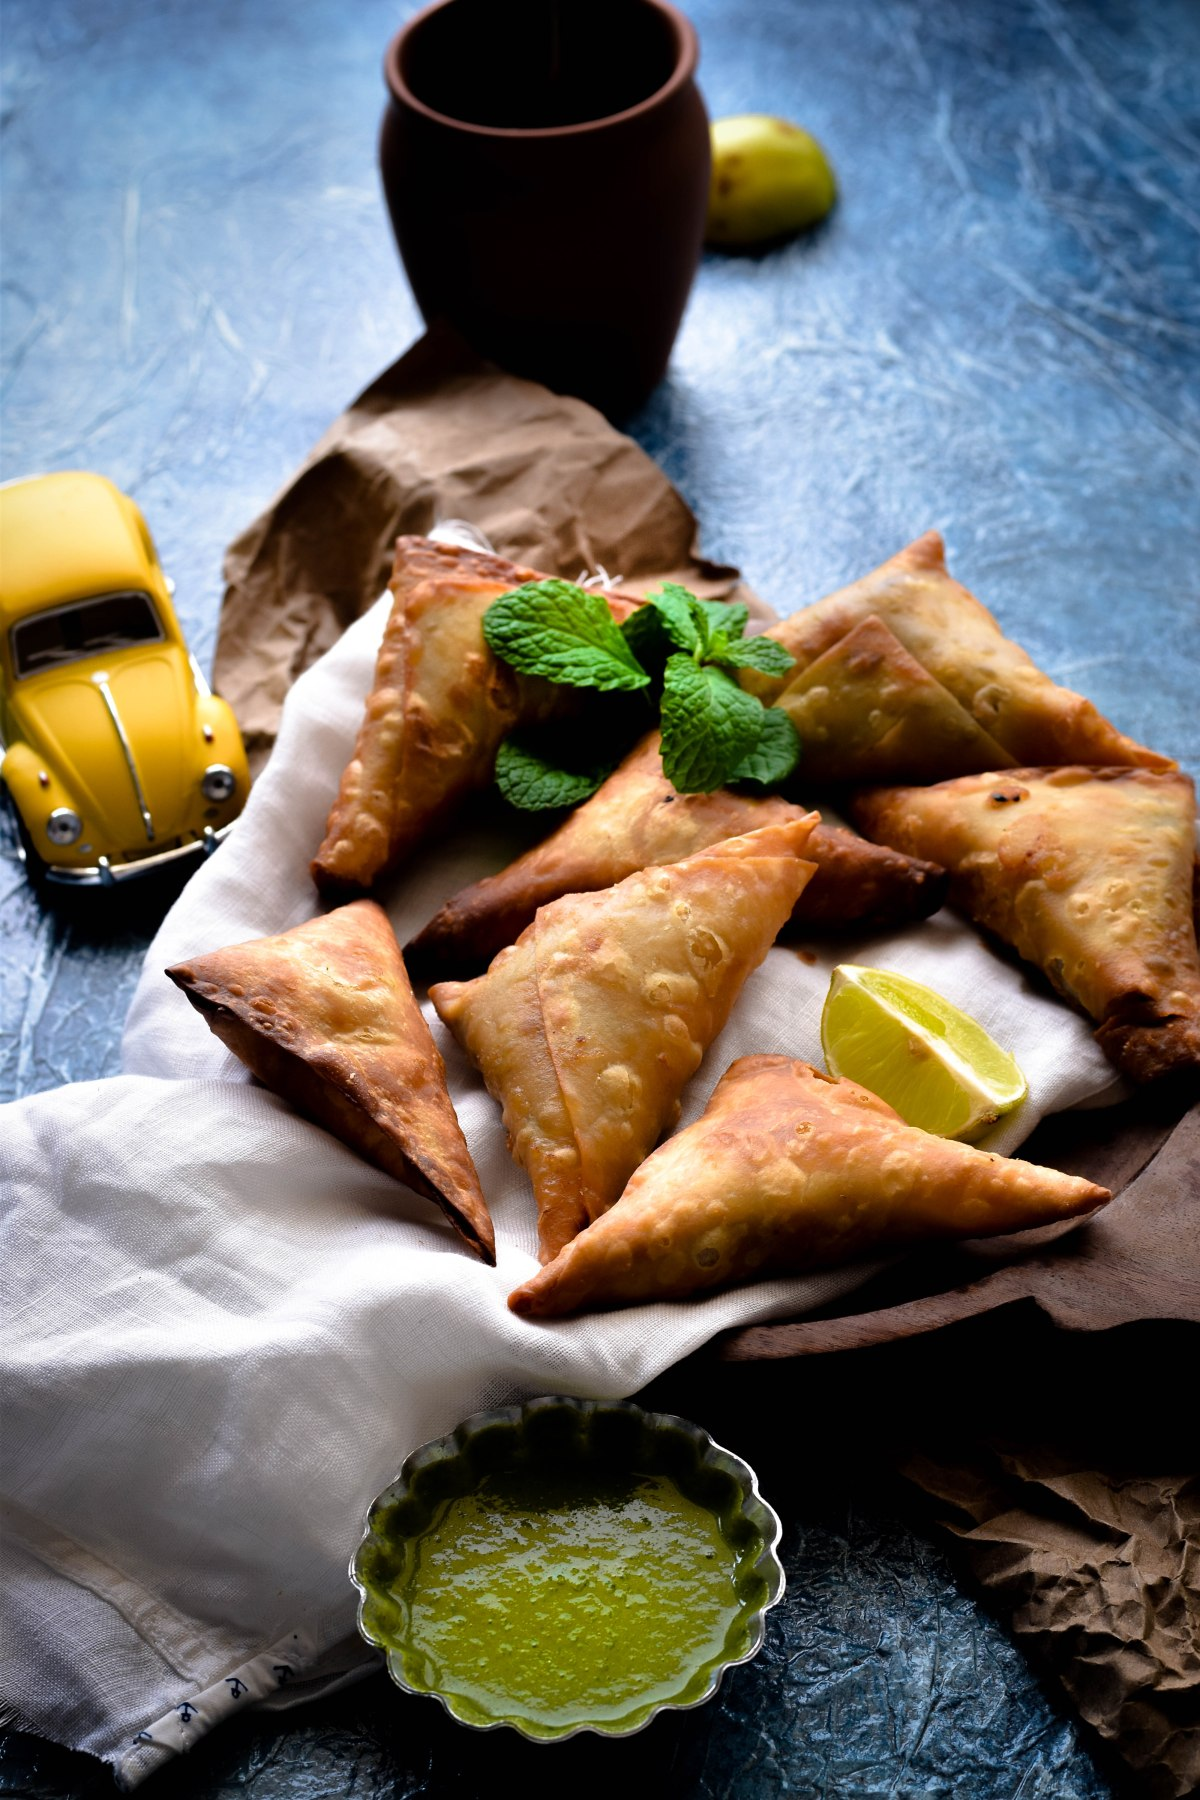 Achari Murg Samosa – Samosa stuffed with chicken cooked in pickling spices